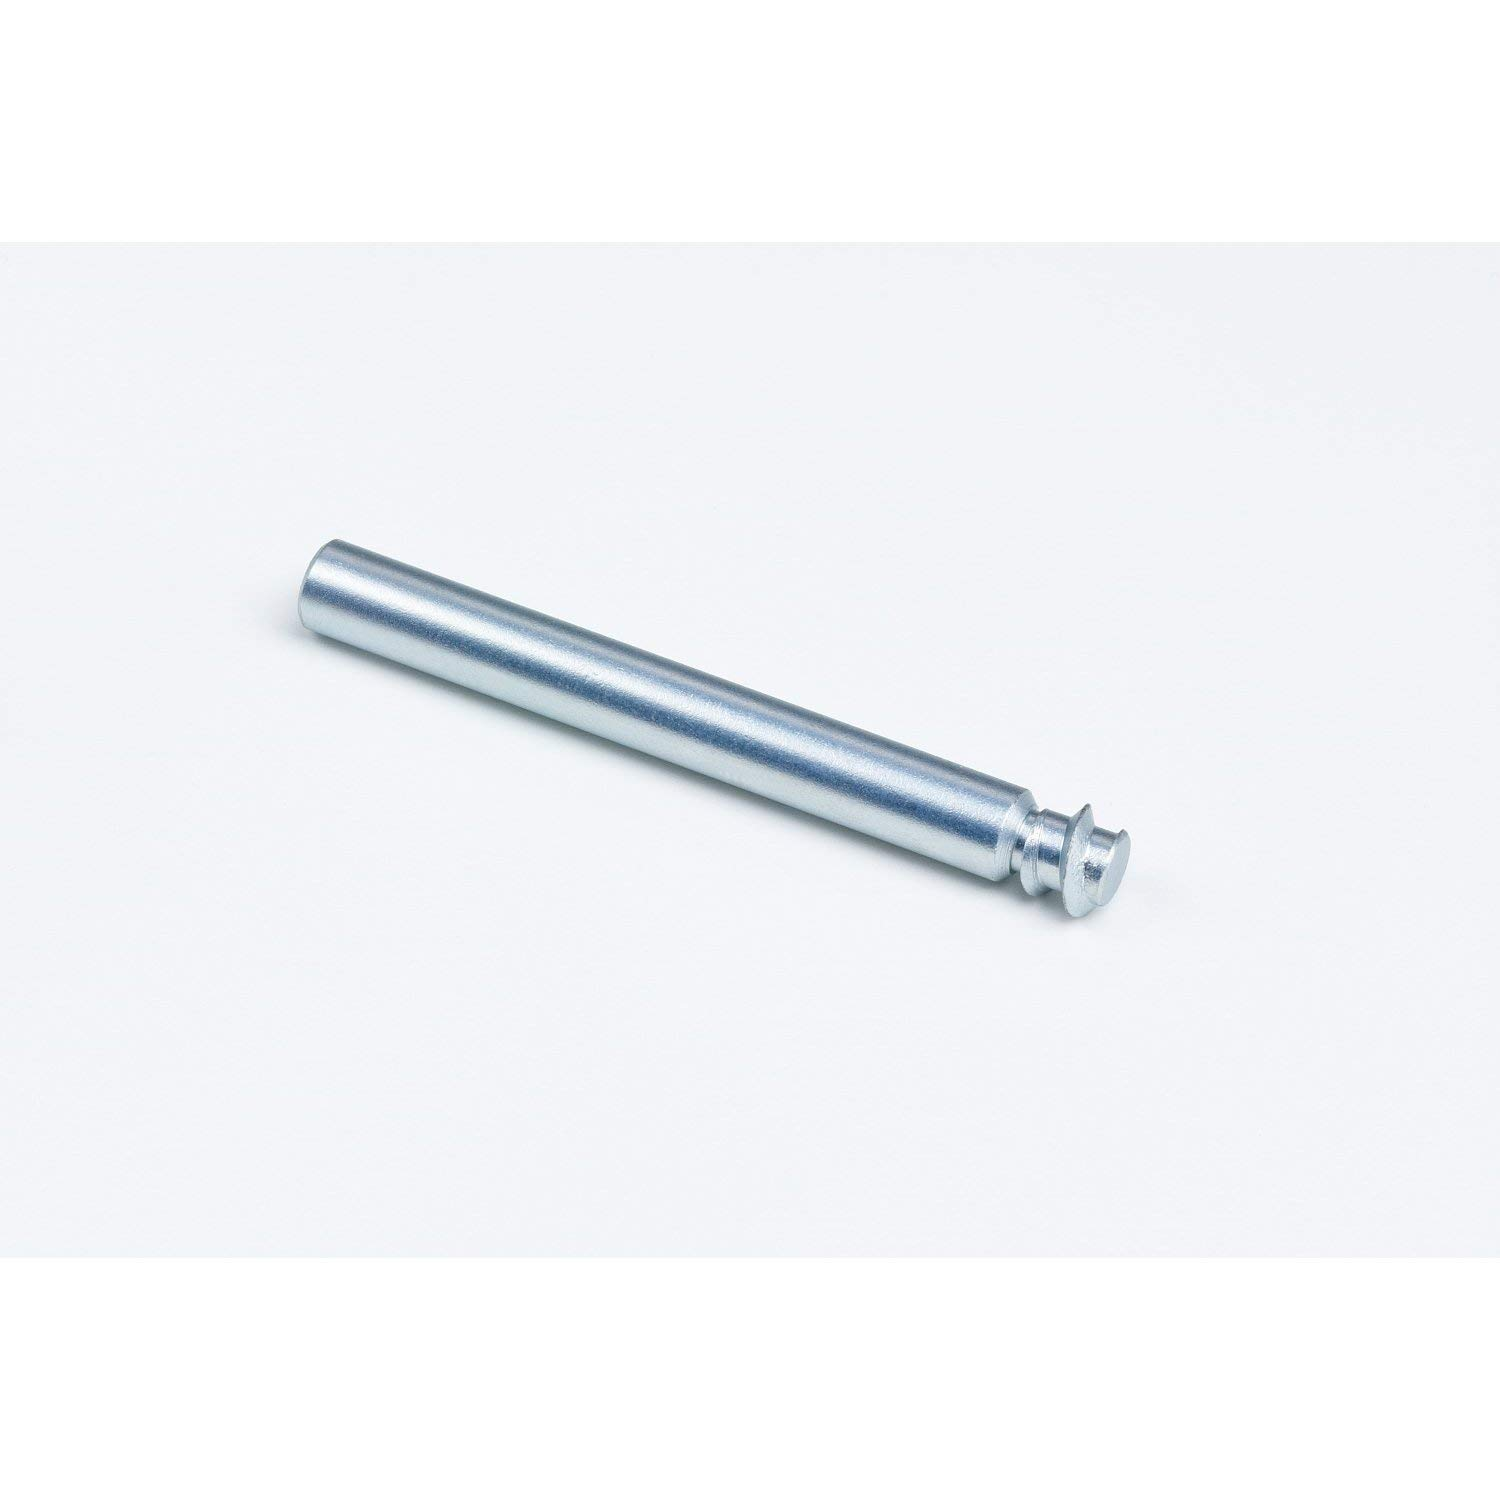 Pack of 5 3M Roloc TS and TSM Mandrel 85097 2 Length Pack of 5 2 Length